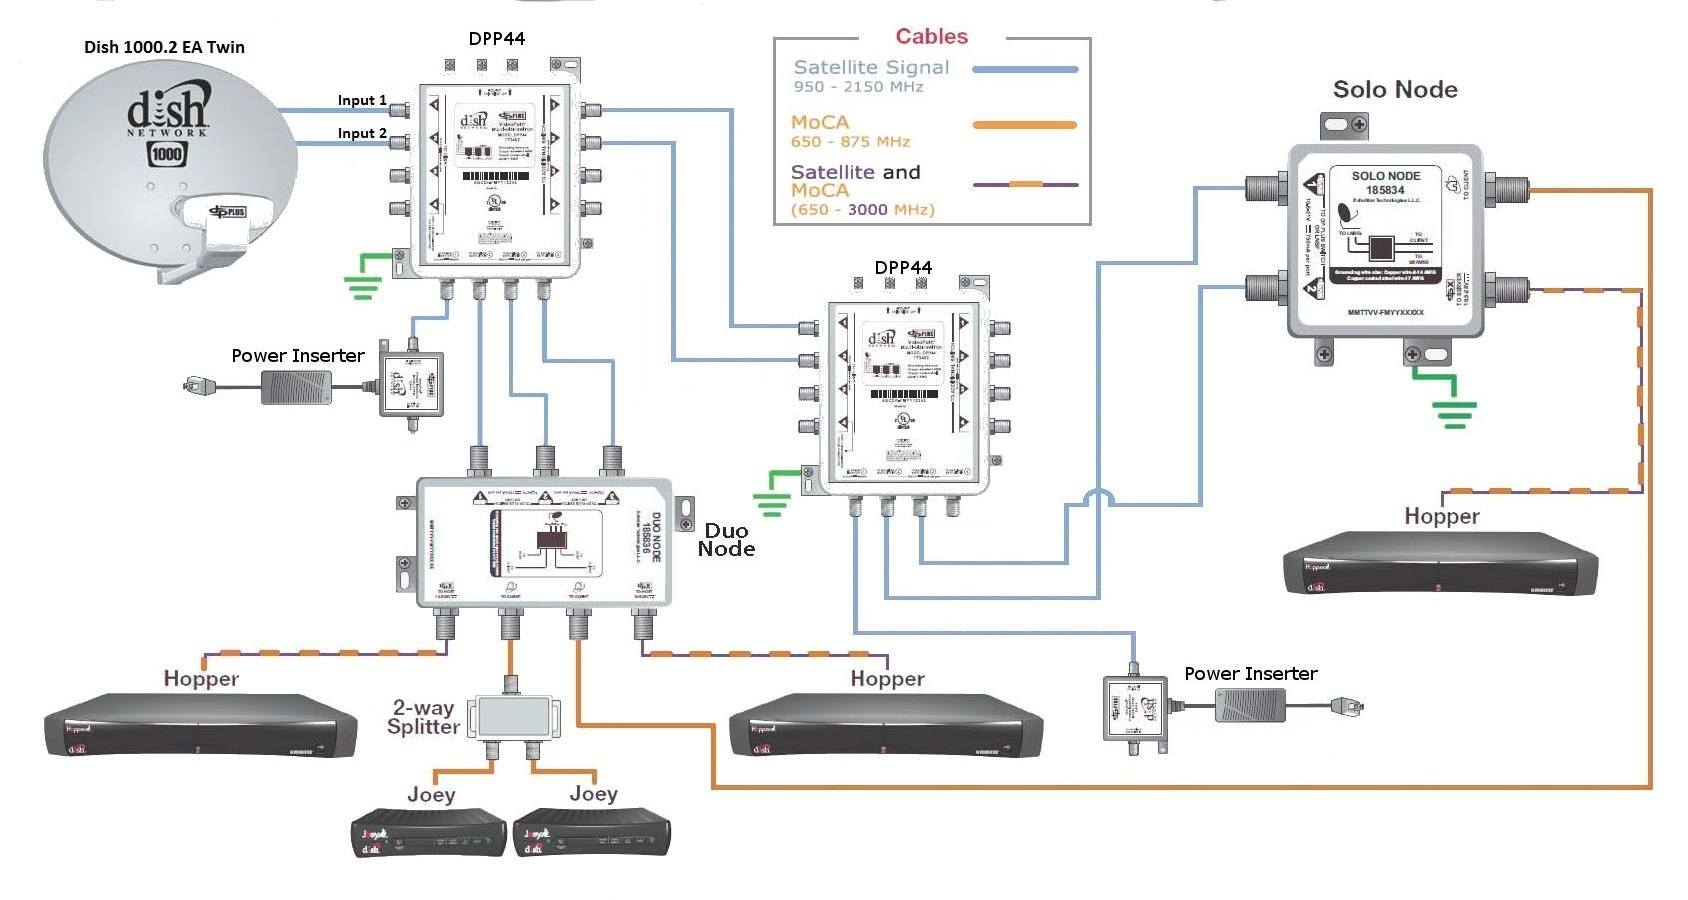 dish network wiring diagram hopper dish network wiring diagram  at mifinder.co